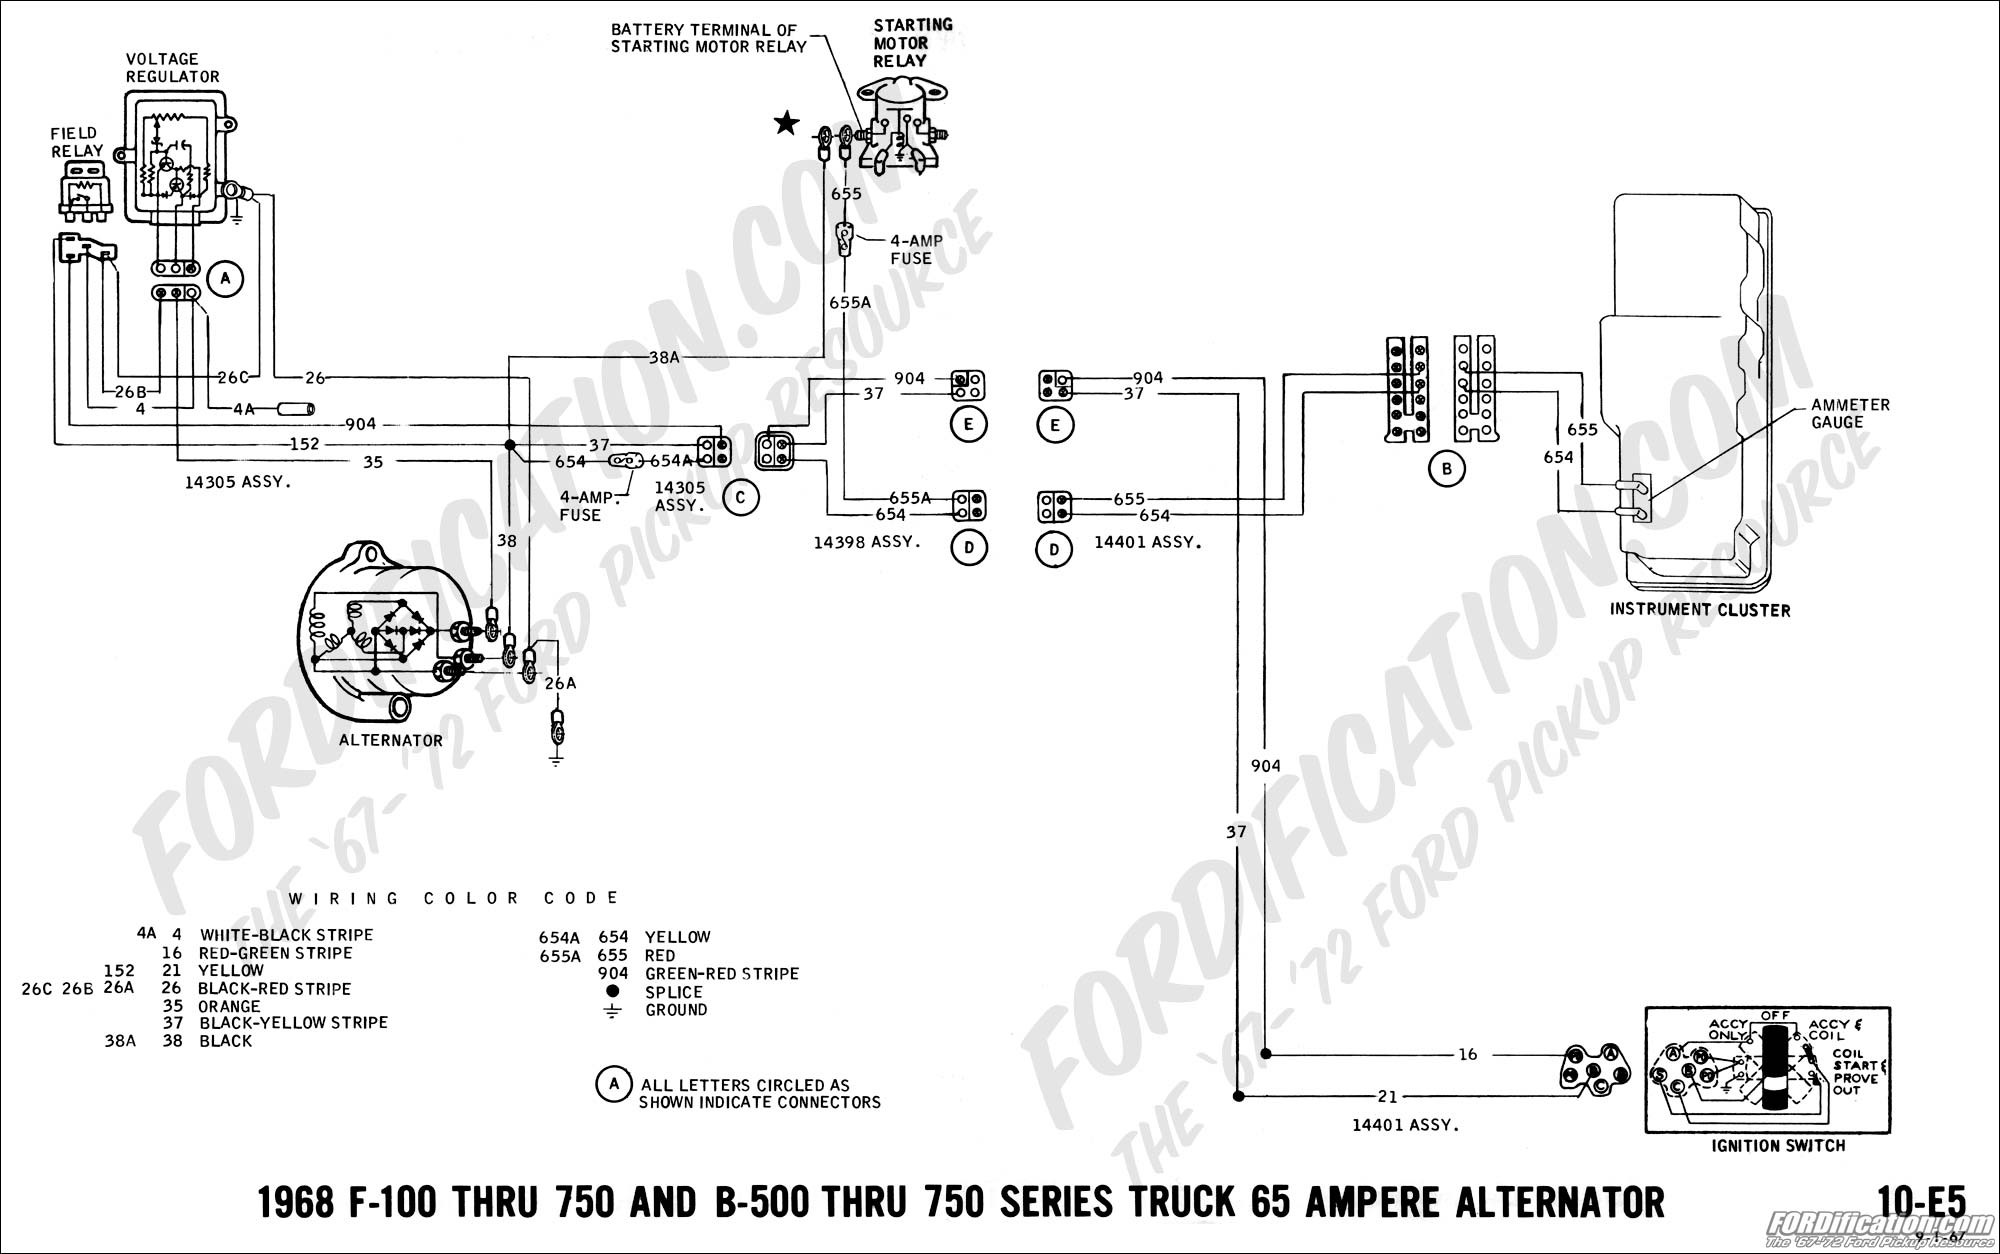 Alternator Wiring Diagram B+ D+ W from mainetreasurechest.com